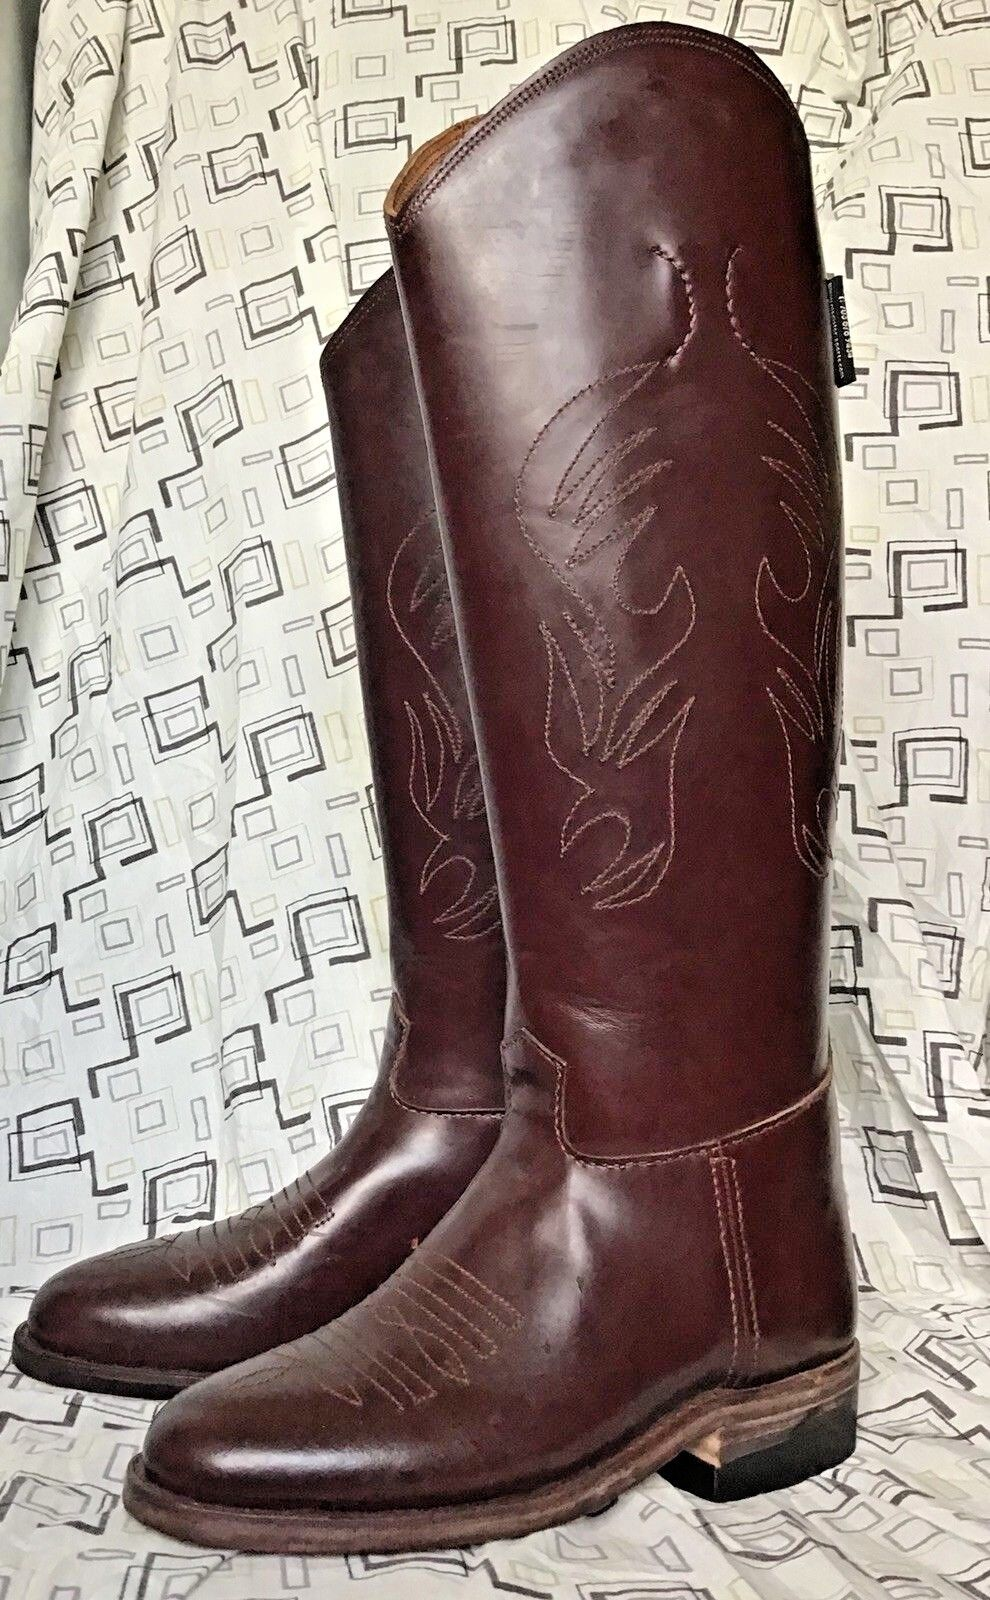 Polo Player Boots - Men's 11 - Red Brown - Equestrian Tall Boots Western Boots